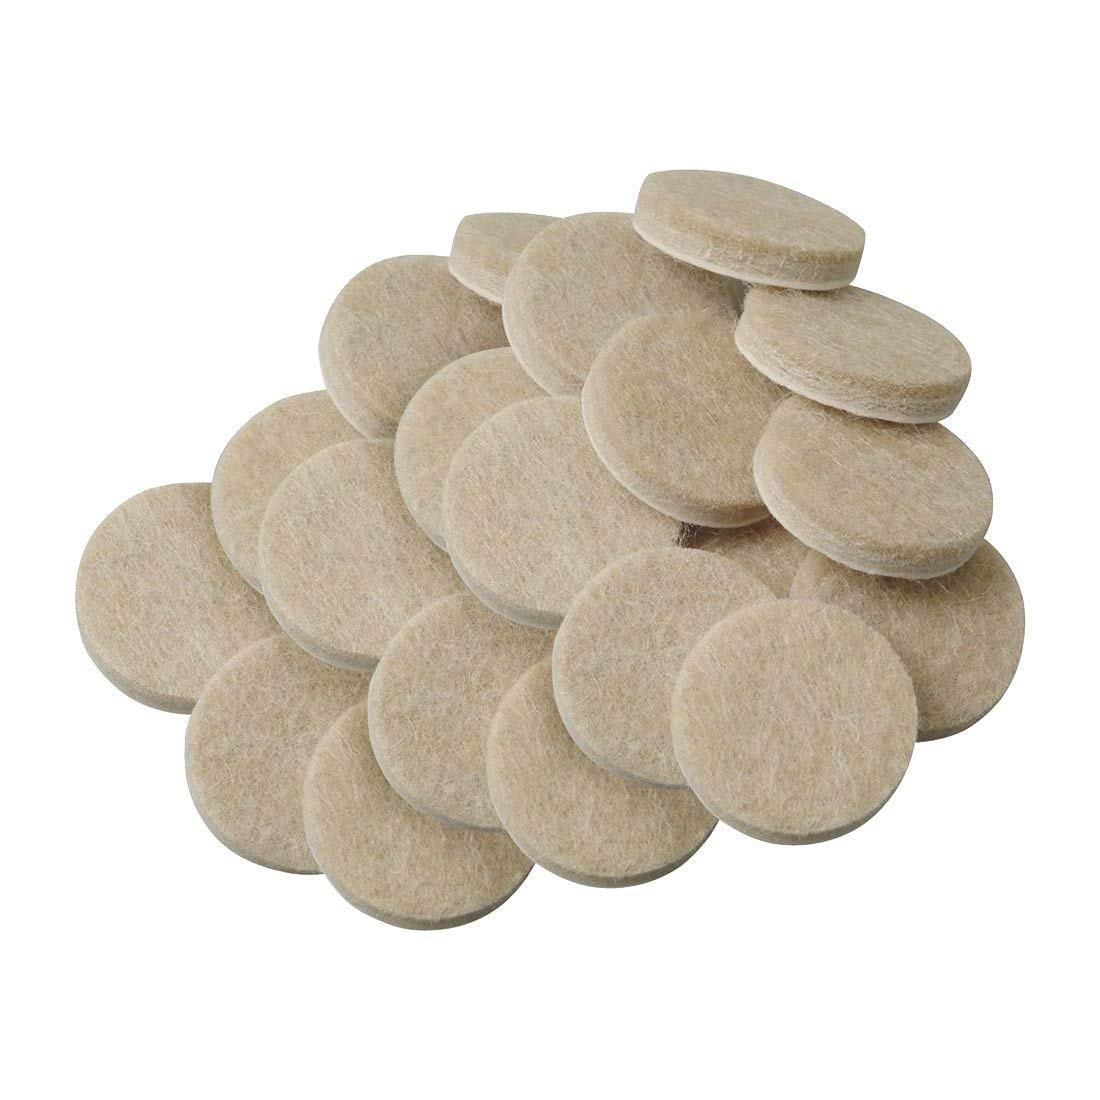 TOOGOO(R) 20pcs Self-Stick 3/4 inch Furniture Felt Pads for Hard Surfaces - Oatmeal, Round